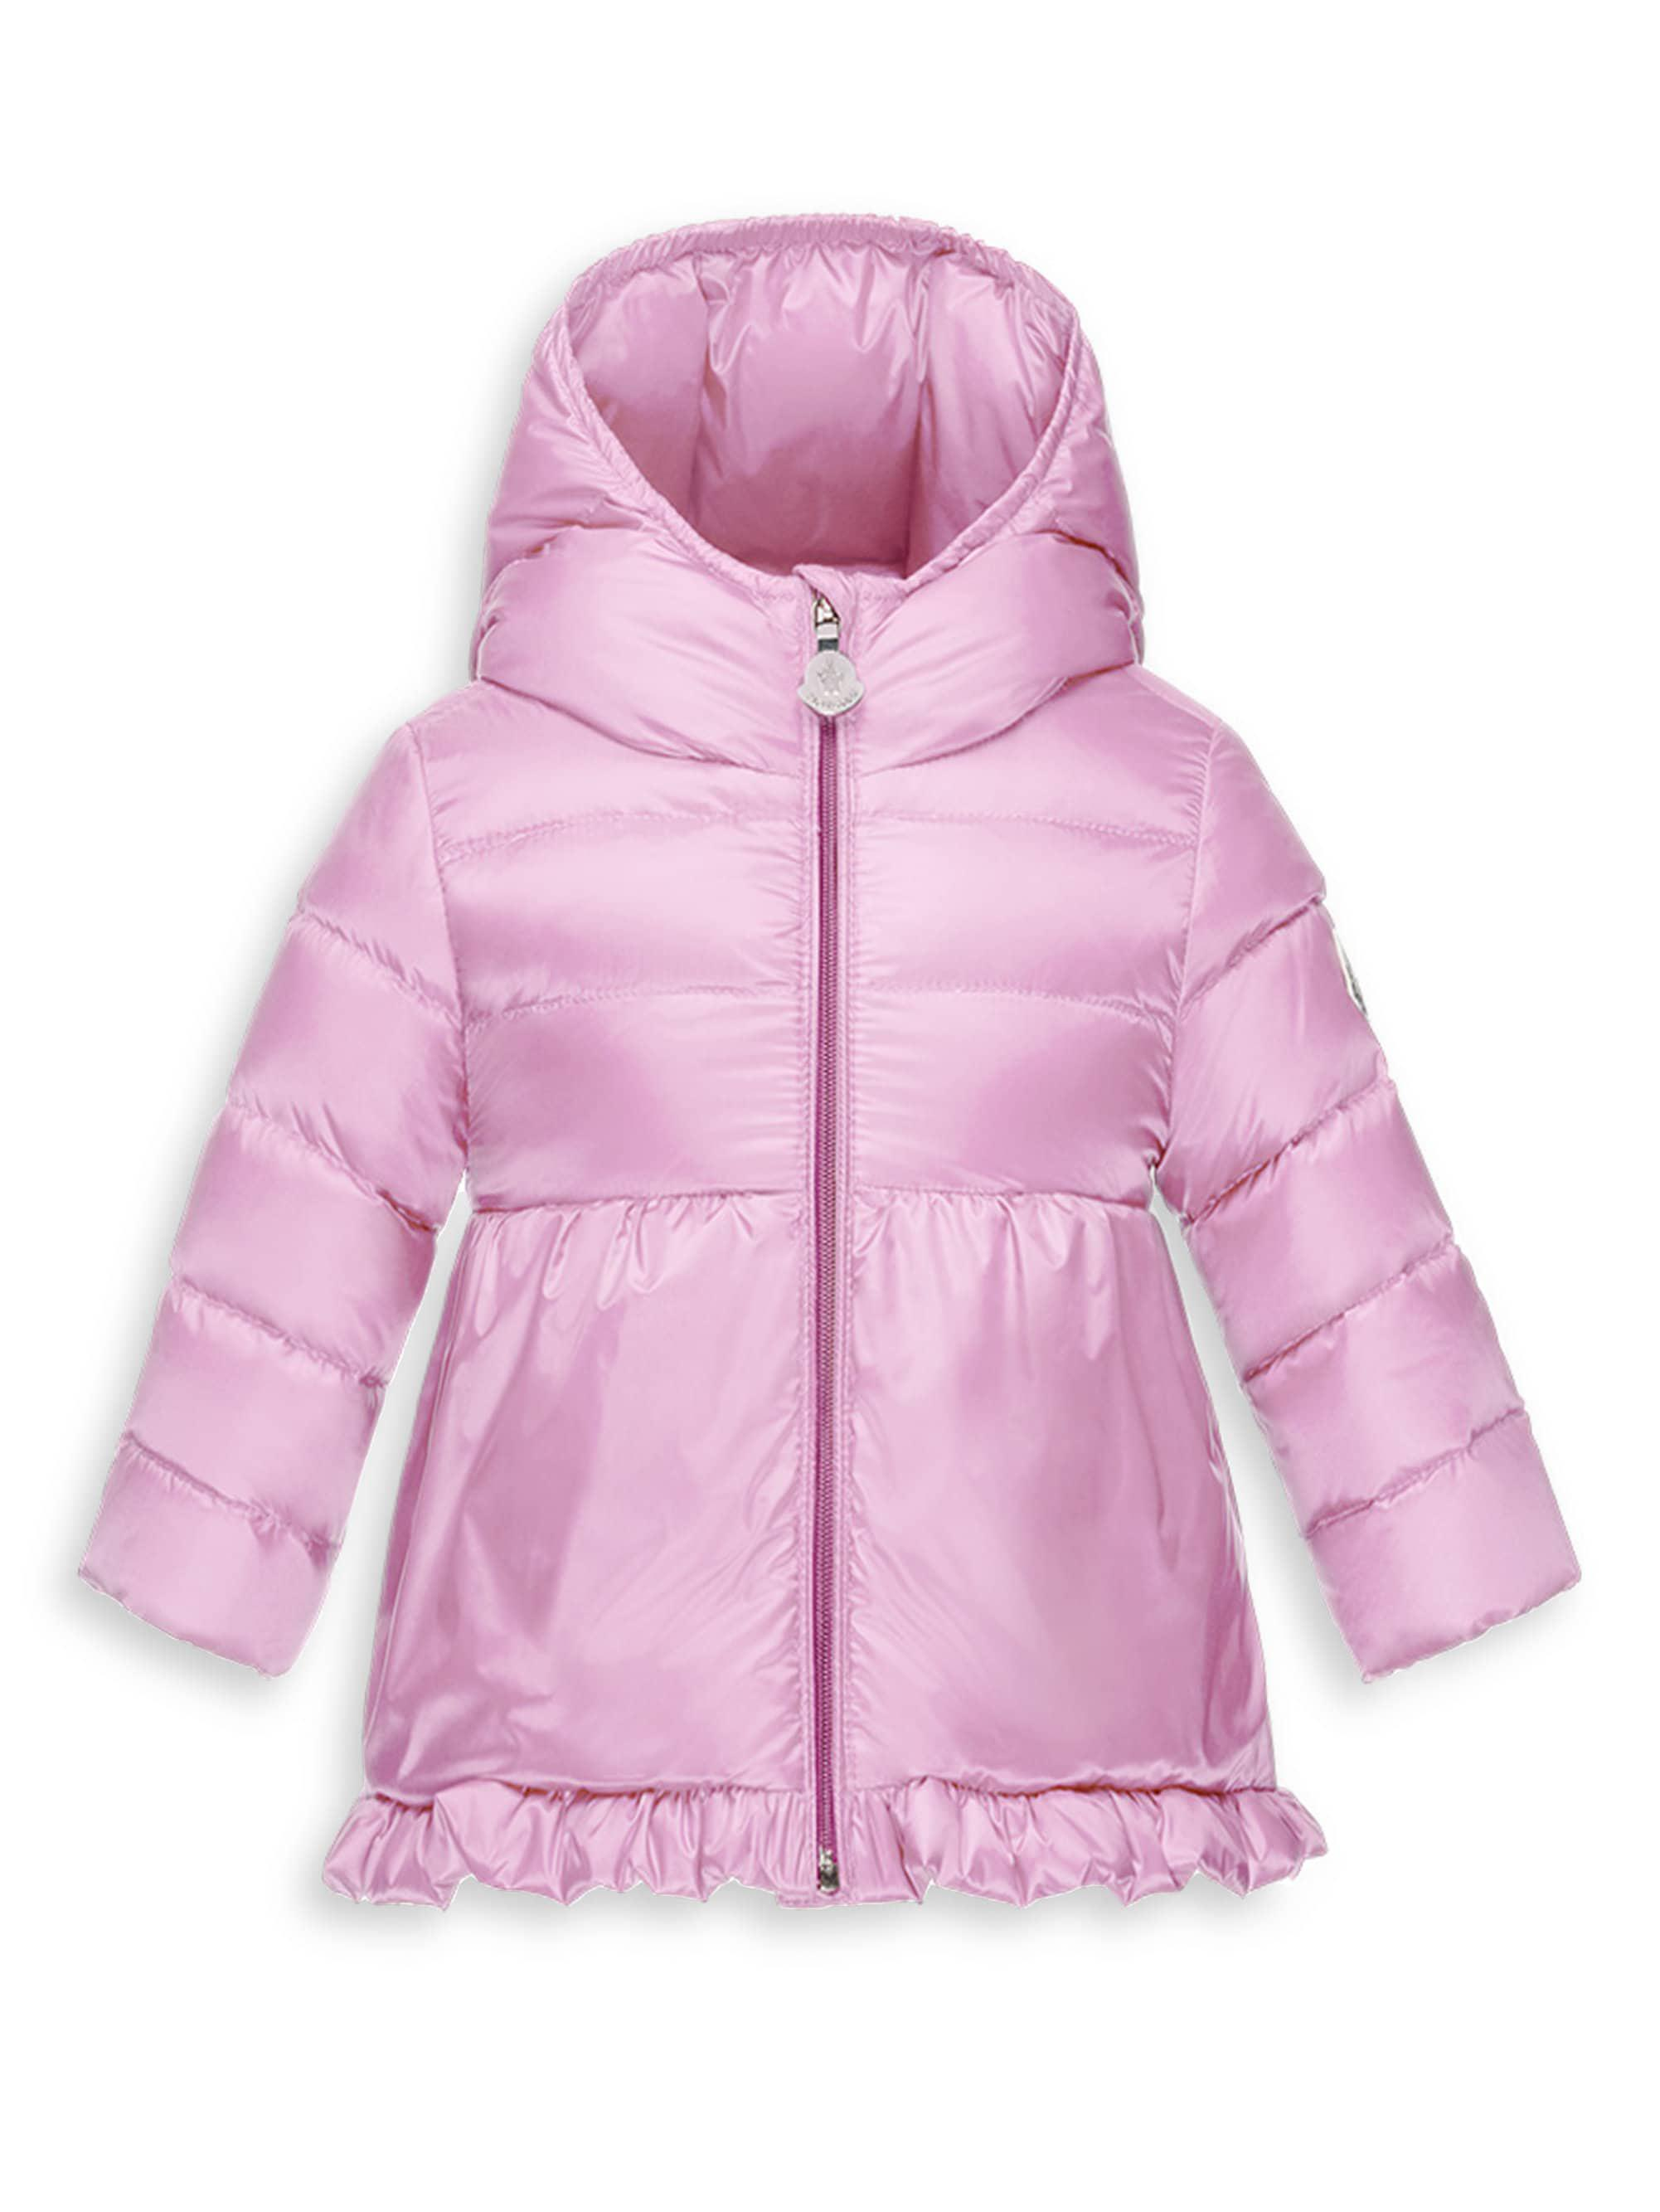 9ce606d65e60 Moncler Baby Girl s Odile Puffer Coat in Pink - Lyst